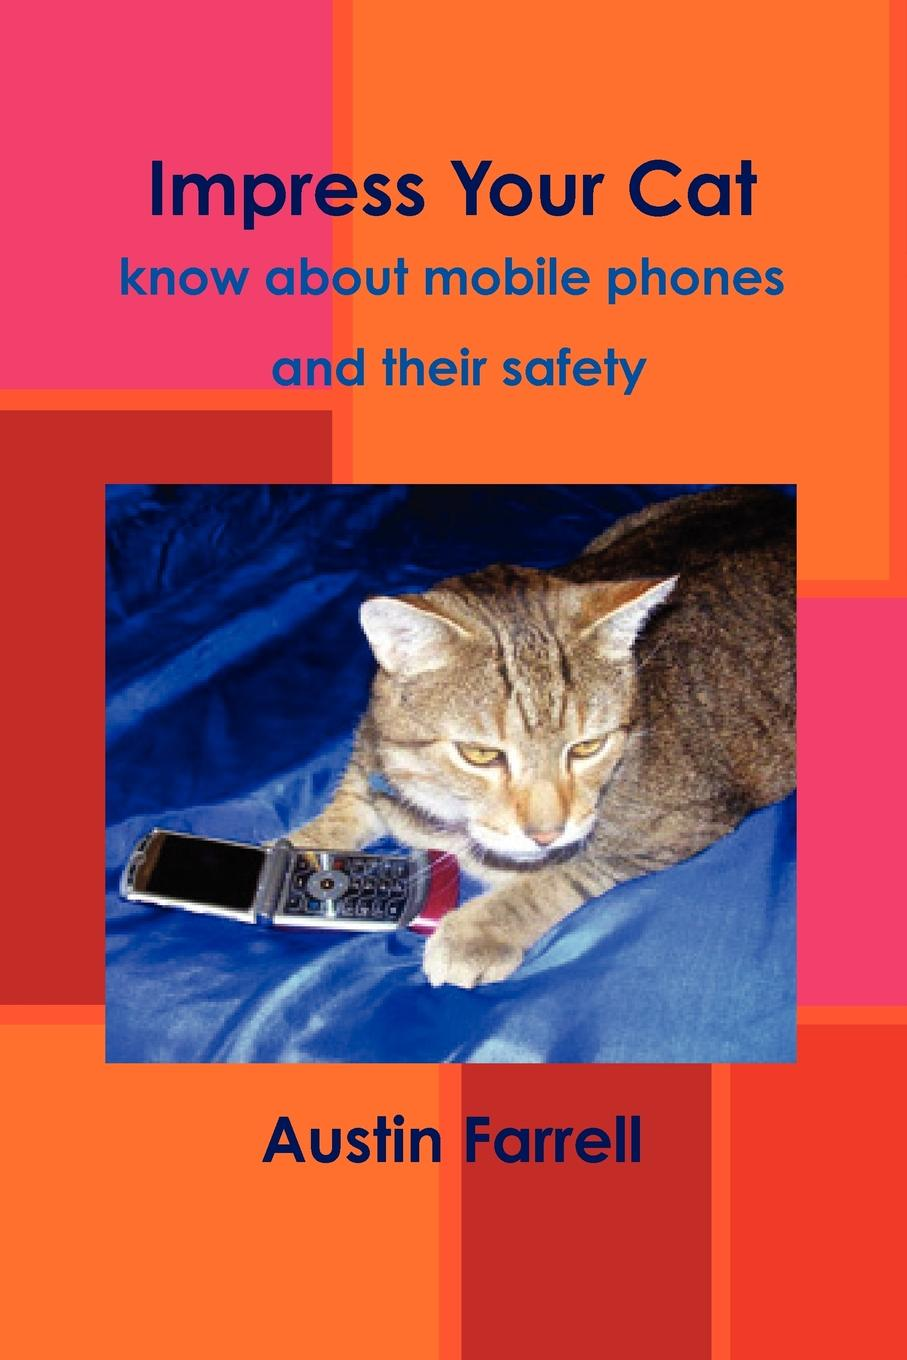 Austin Farrell Impress Your Cat. know about mobile phones and their safety